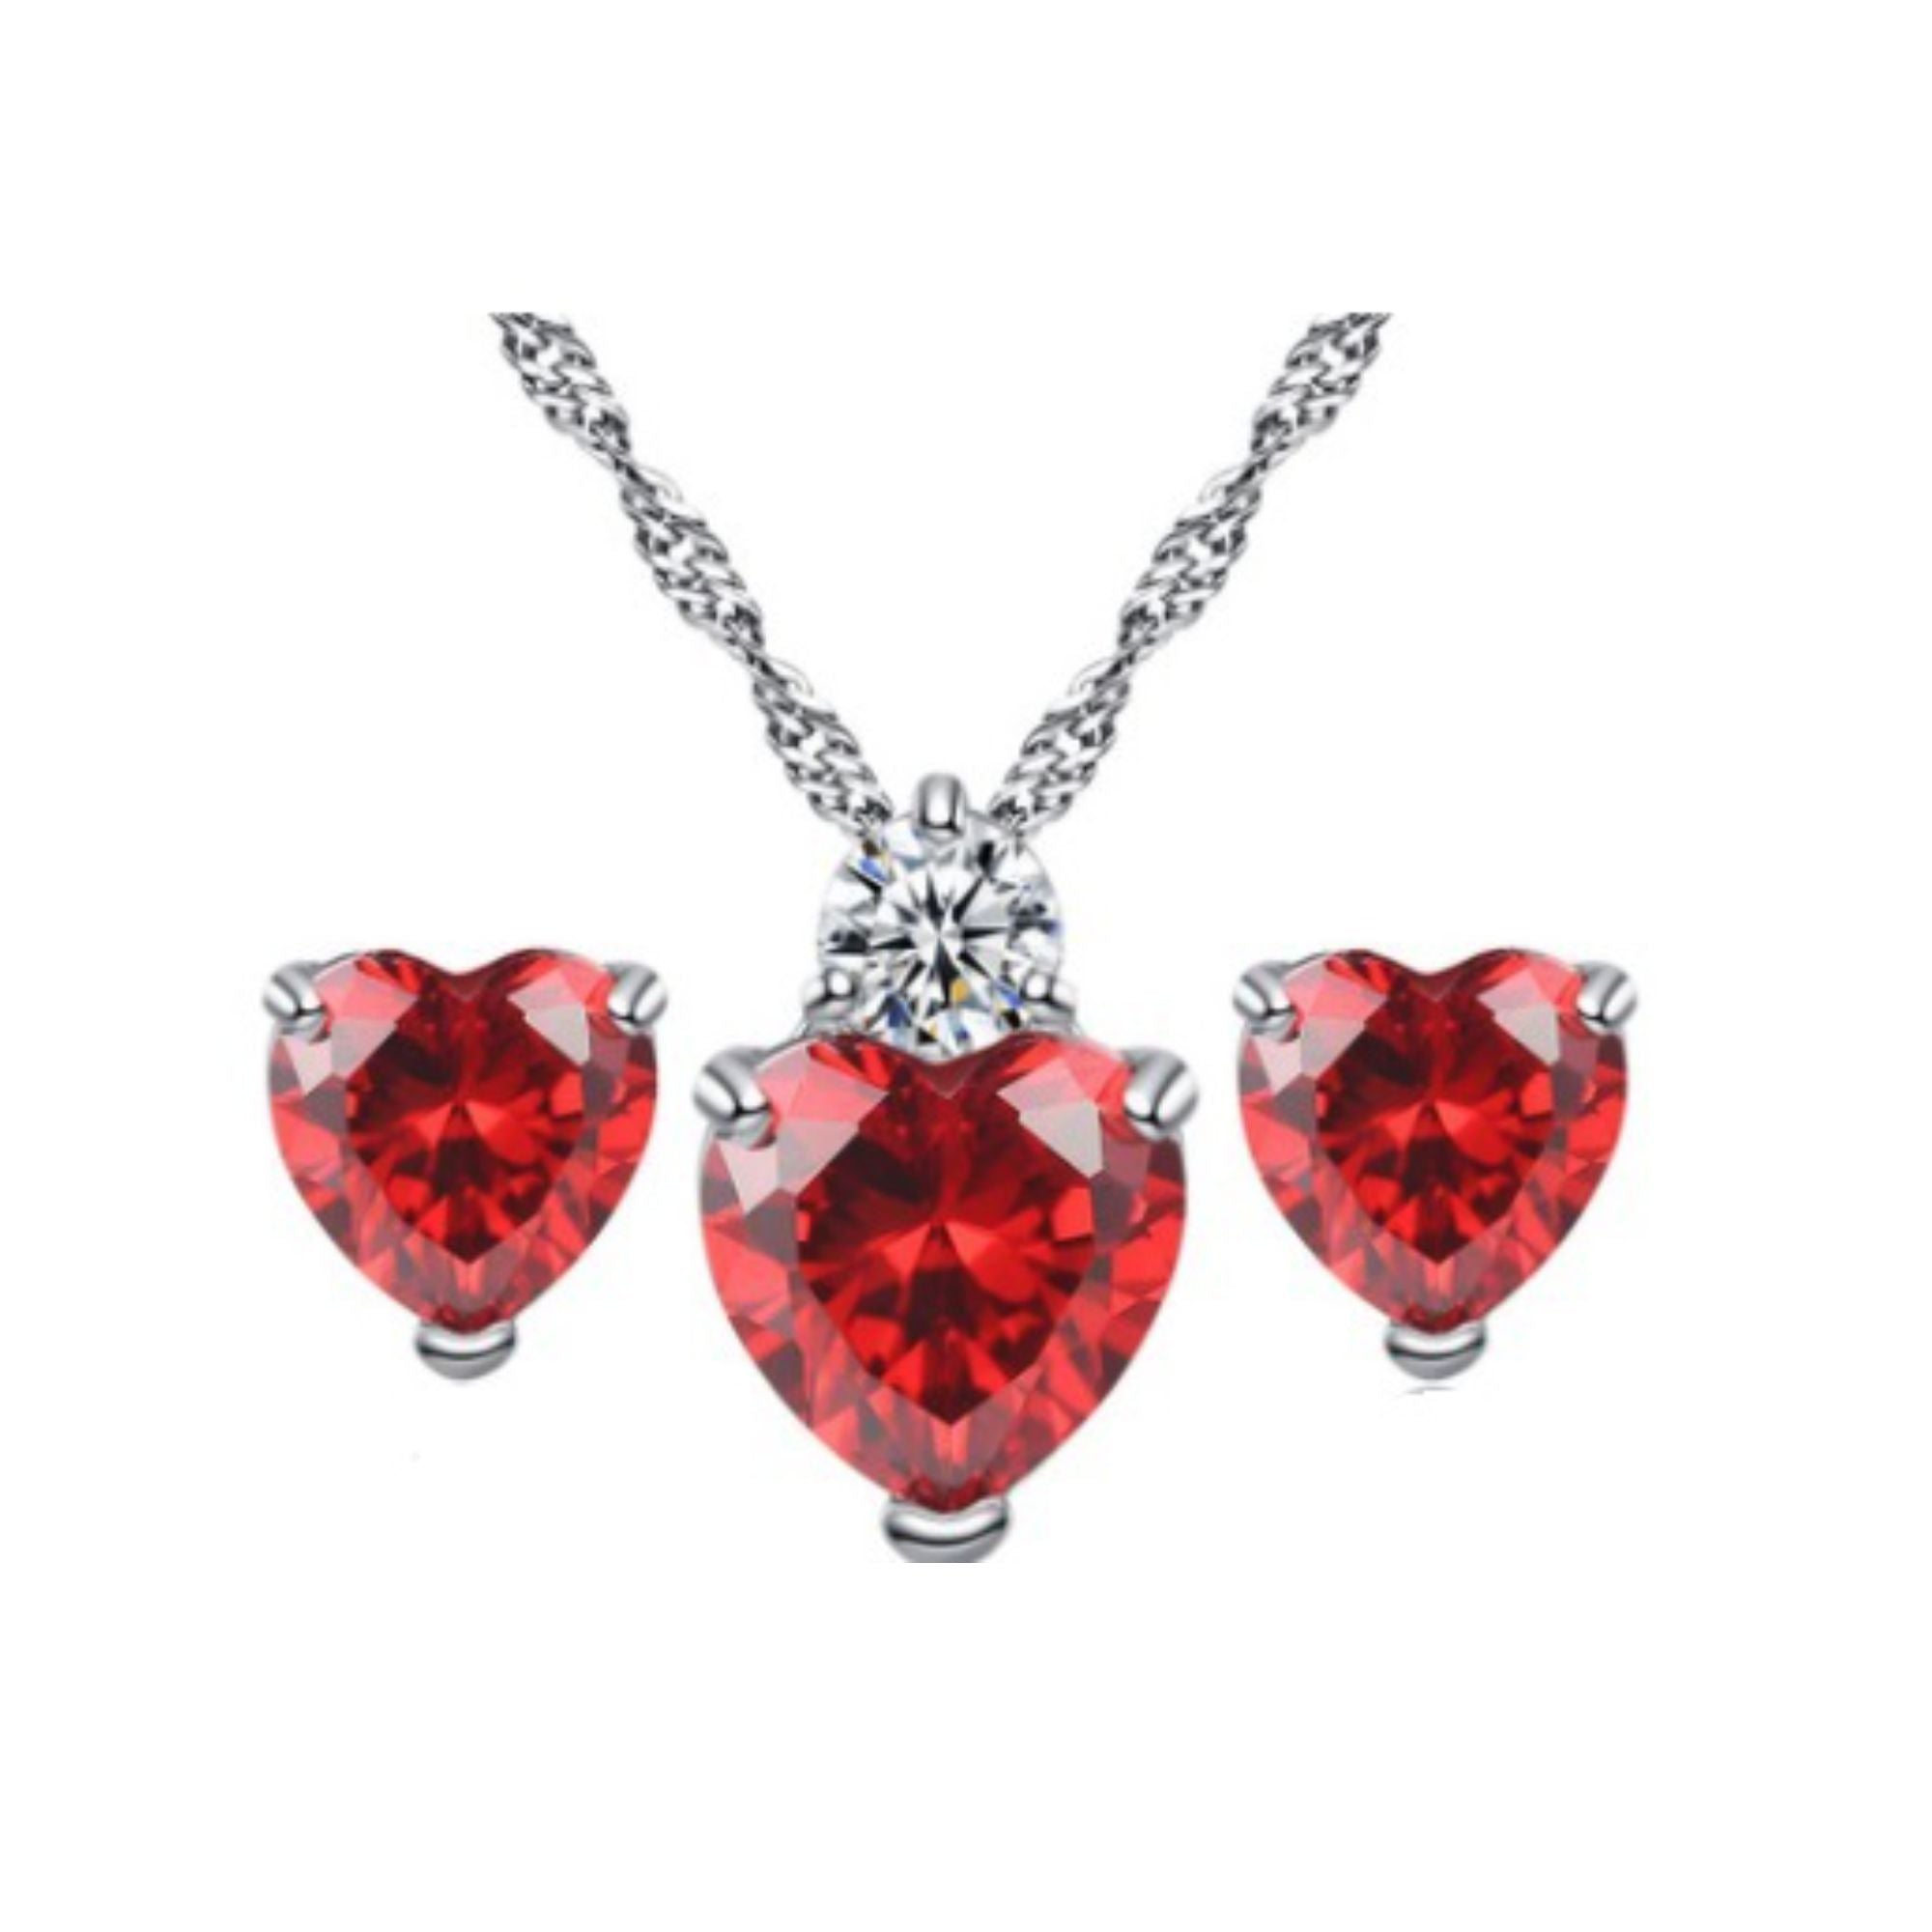 gemstones red from necklace set love enchanting and swirl handcrafted rantana heart aeravida ss pendant earring with sterling this details artisan features sets design products coral silver in jewelry a